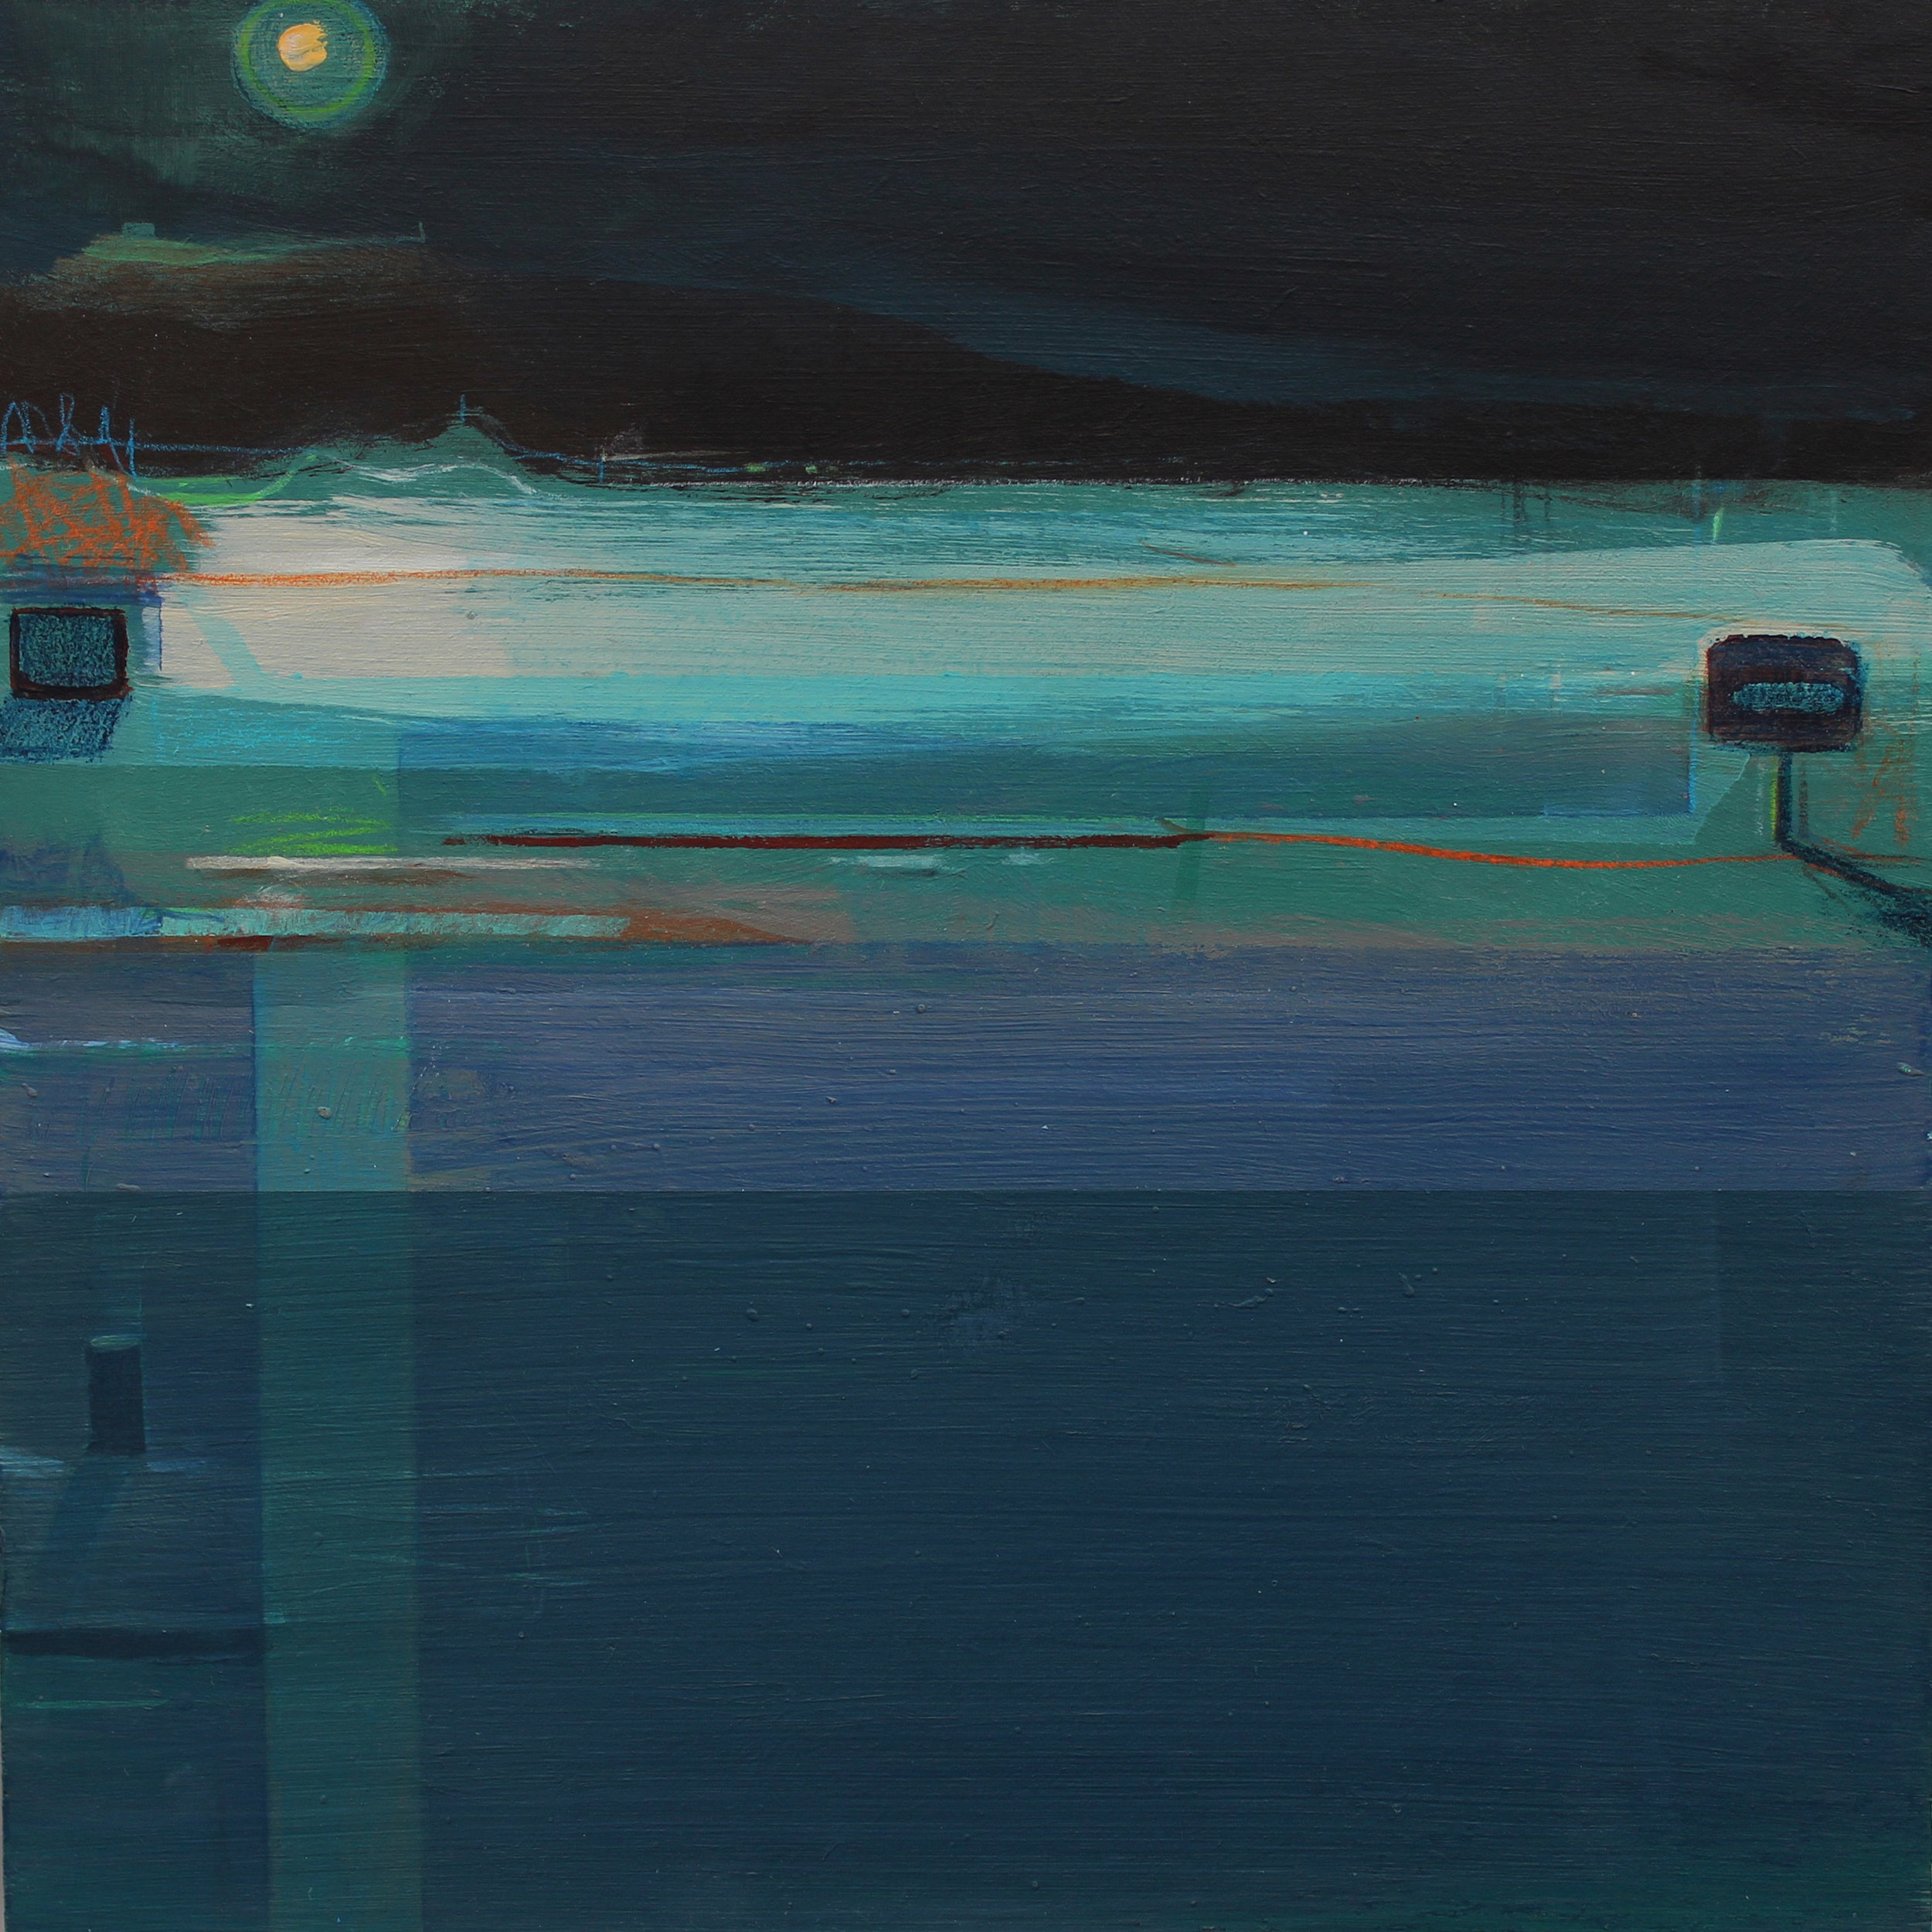 Moonlit coast, 30x30 cm, acrylic on board, £675.